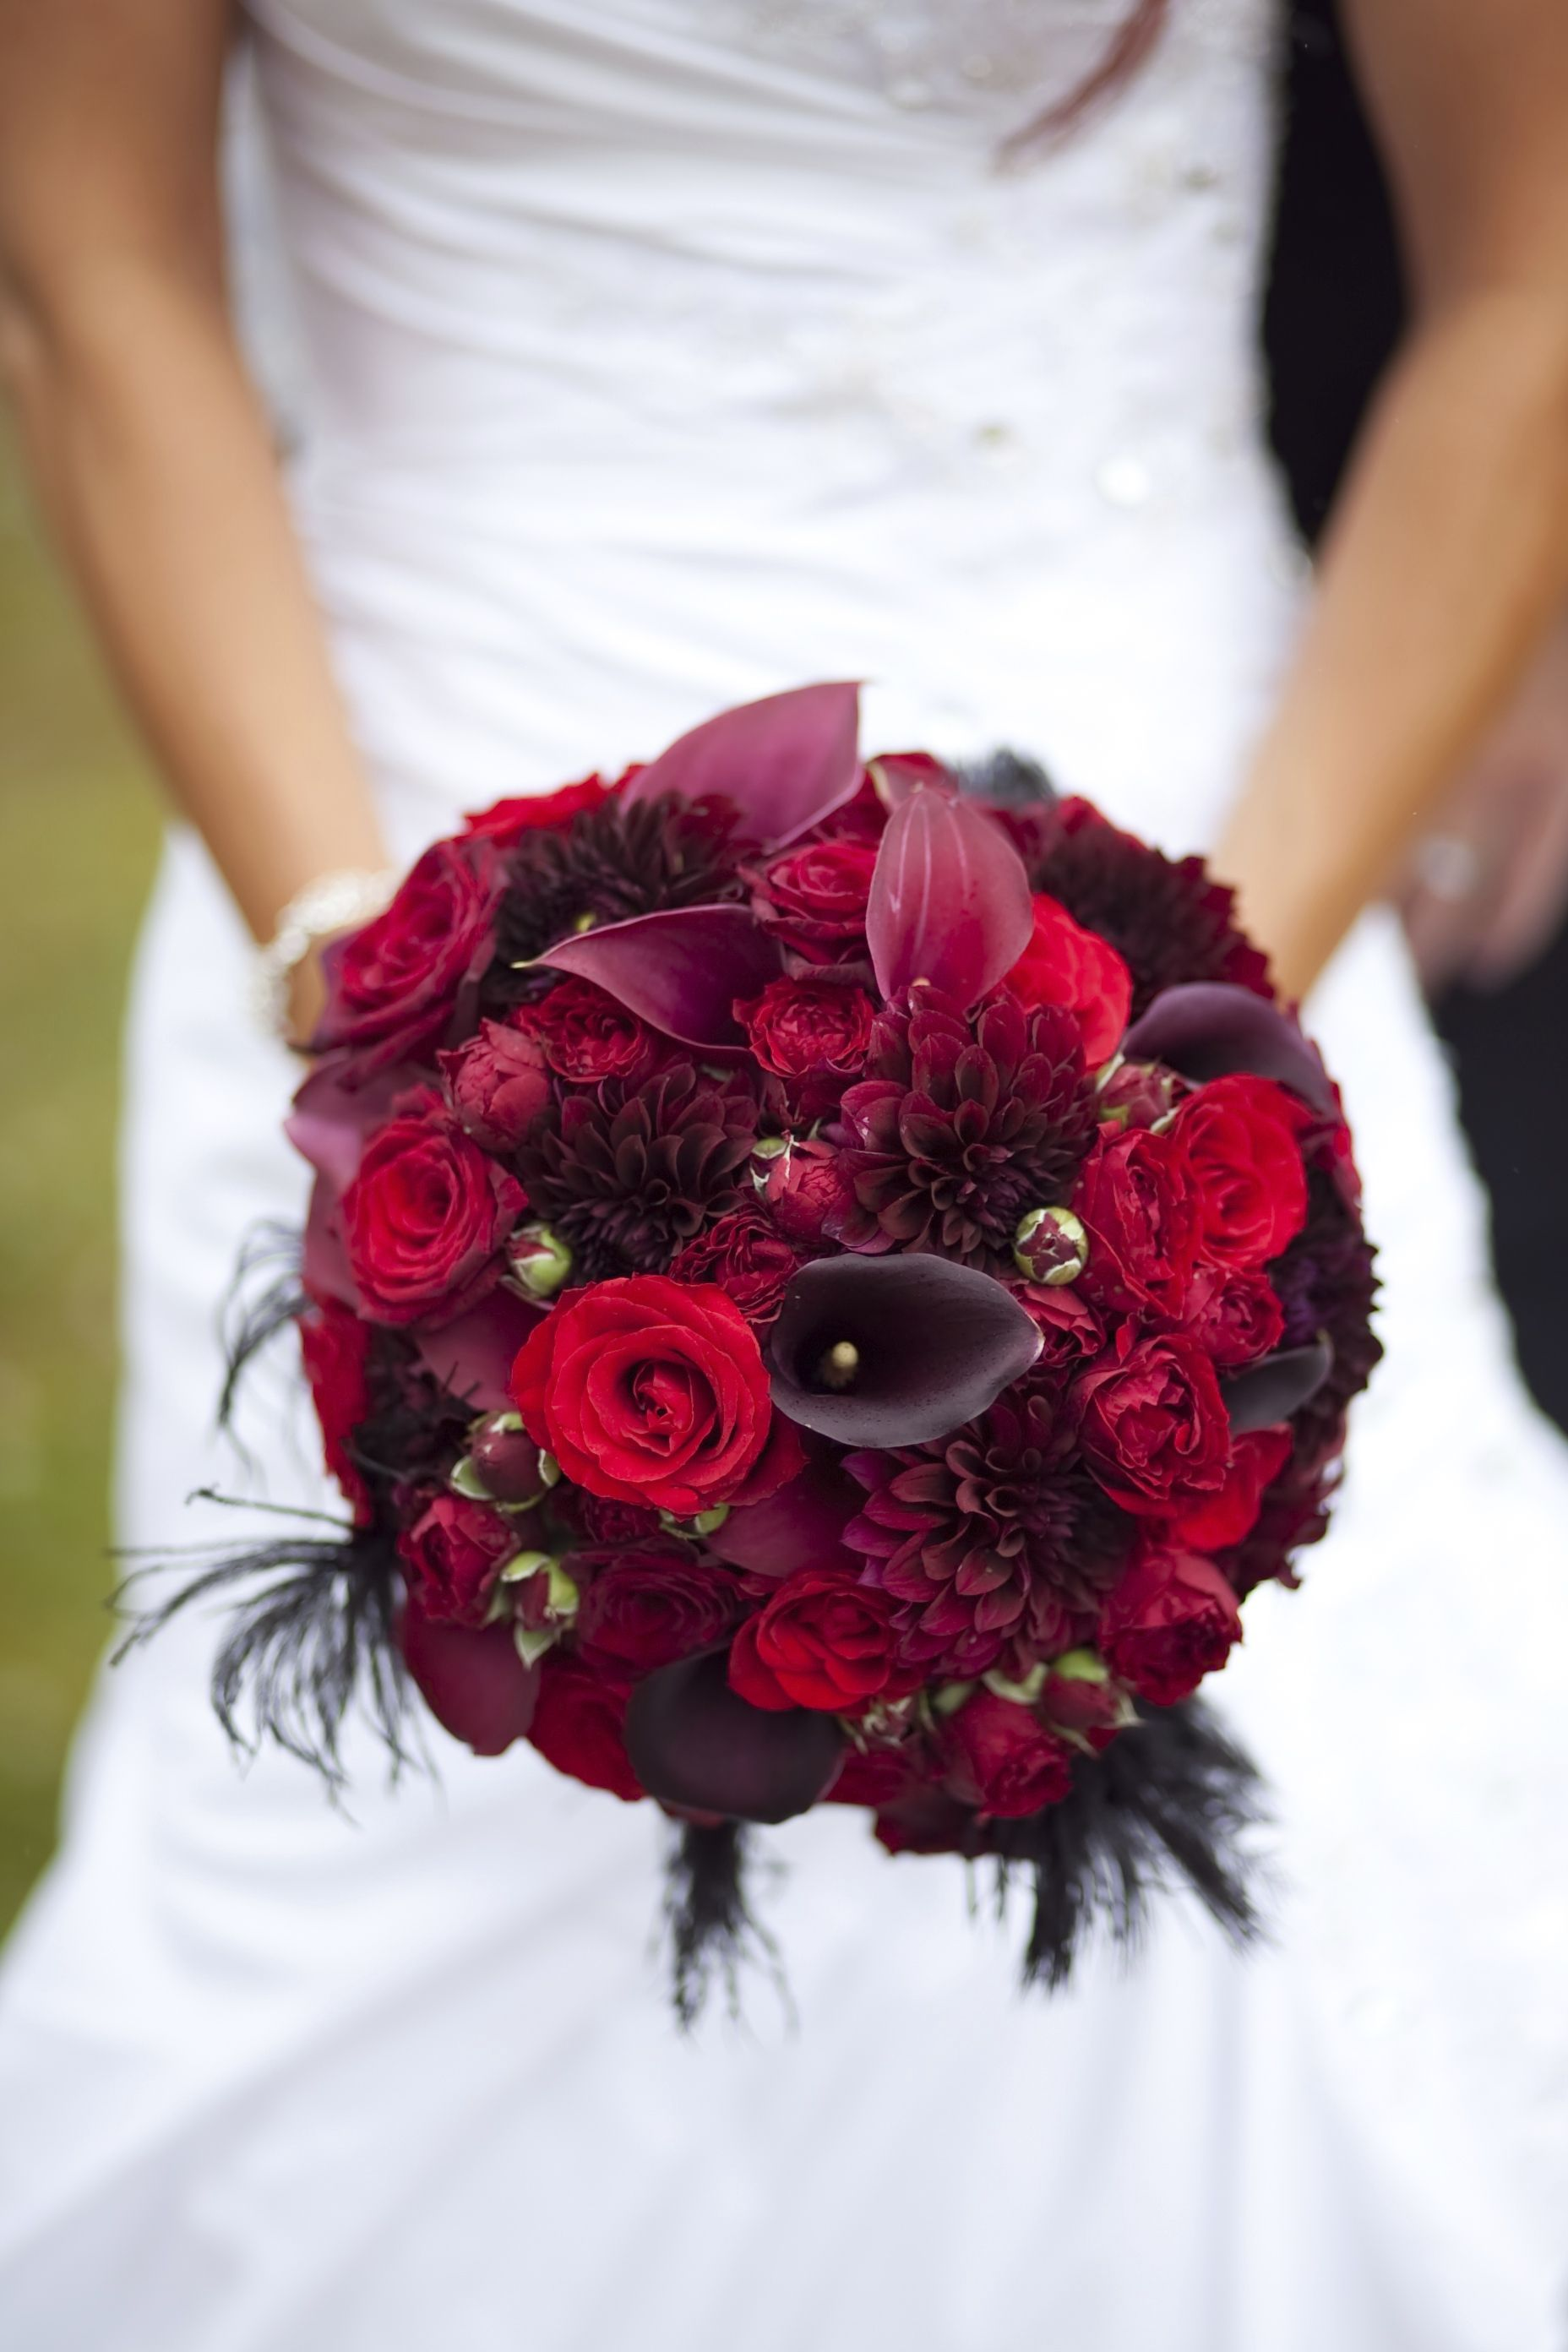 bouquet similar to this but with red asiatic lilies white calla lilies and deep